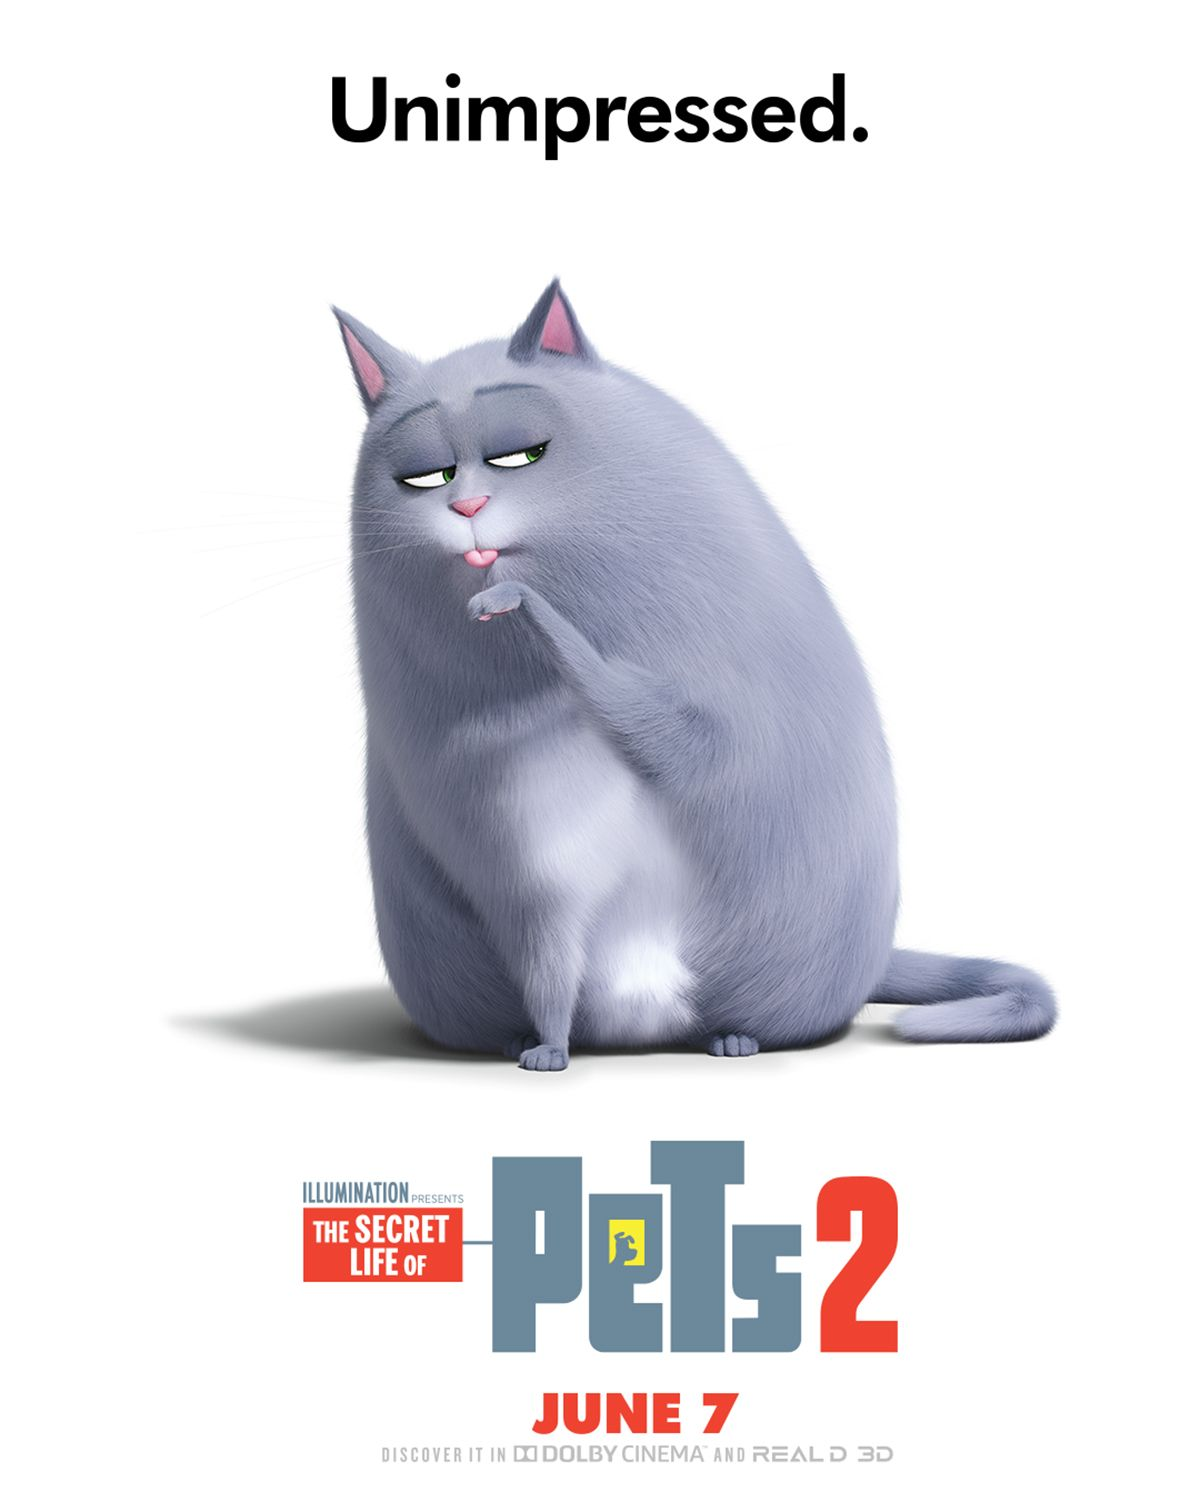 Lake Bell Is Chloe The Pets Return This Summer In The New Movie The Secret Life Of Pets 2 Coming To Theaters June 7 20 Secret Life Of Pets Pets Secret Life